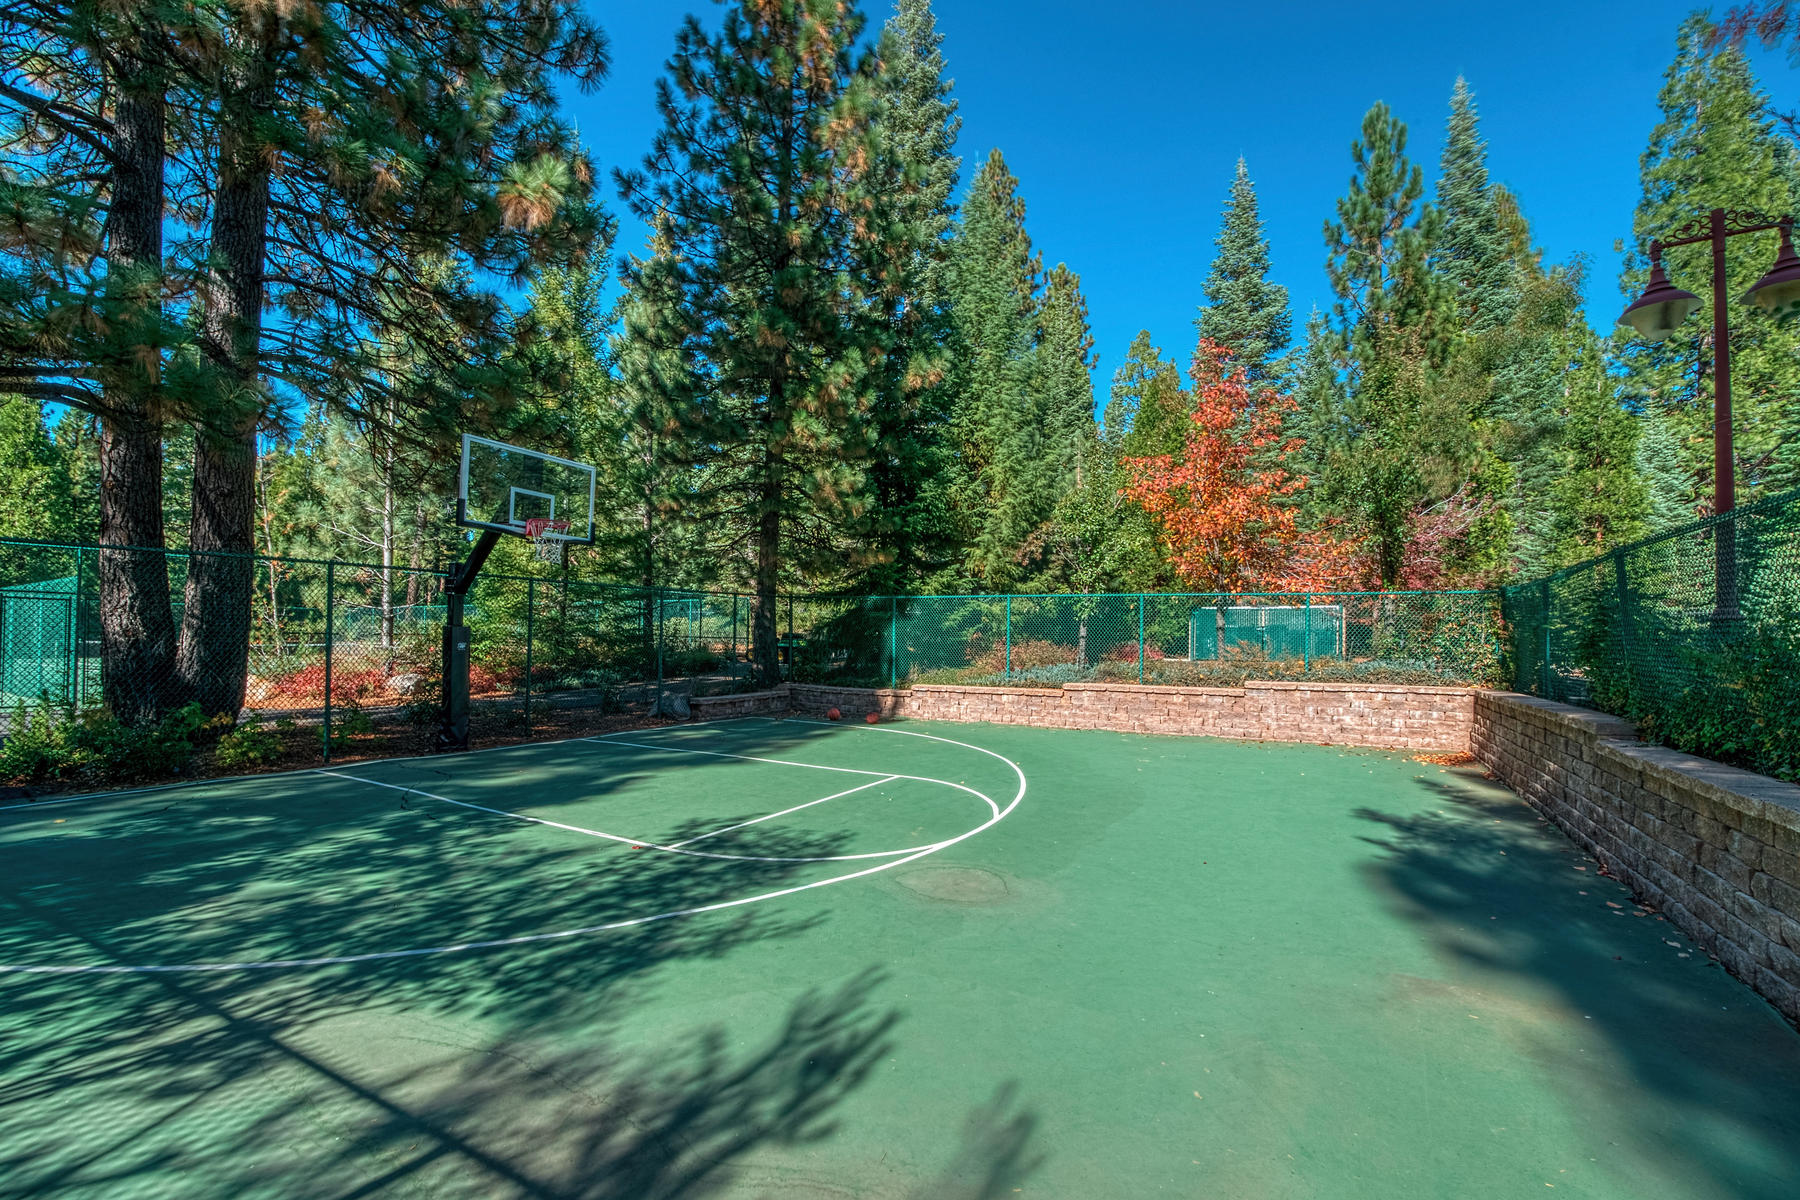 Additional photo for property listing at 2716 Walker Memorial Highway Lake Almanor California 96137 2716 Walker Memorial Highway A-13 Lake Almanor, California 96137 United States